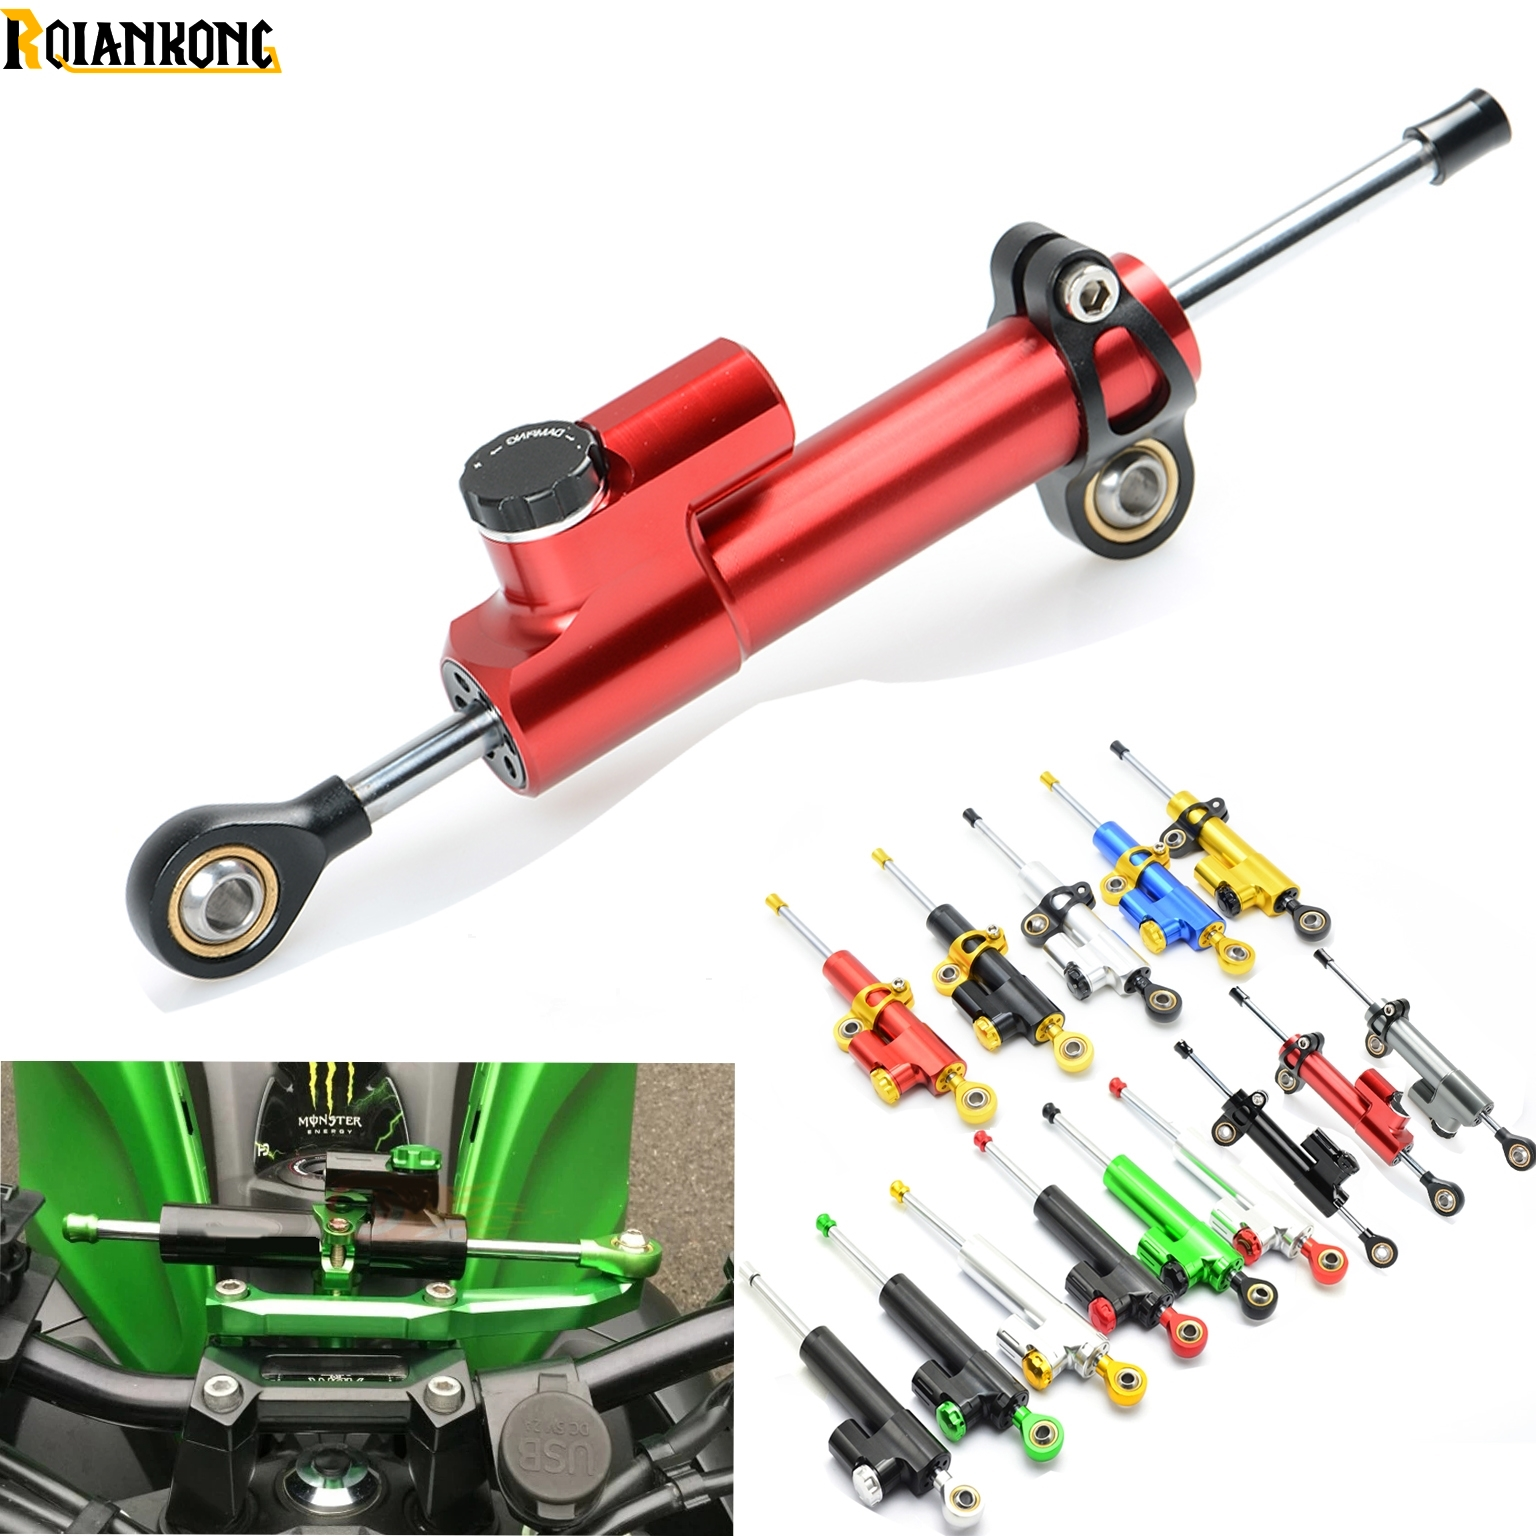 CNC Aluminum Motorcycle Steering Damper Stabilizer Linear Safe Control for Yamaha T-Max 500 T-Max 530/ABS Tracer 900 ABS V-MAX<br>